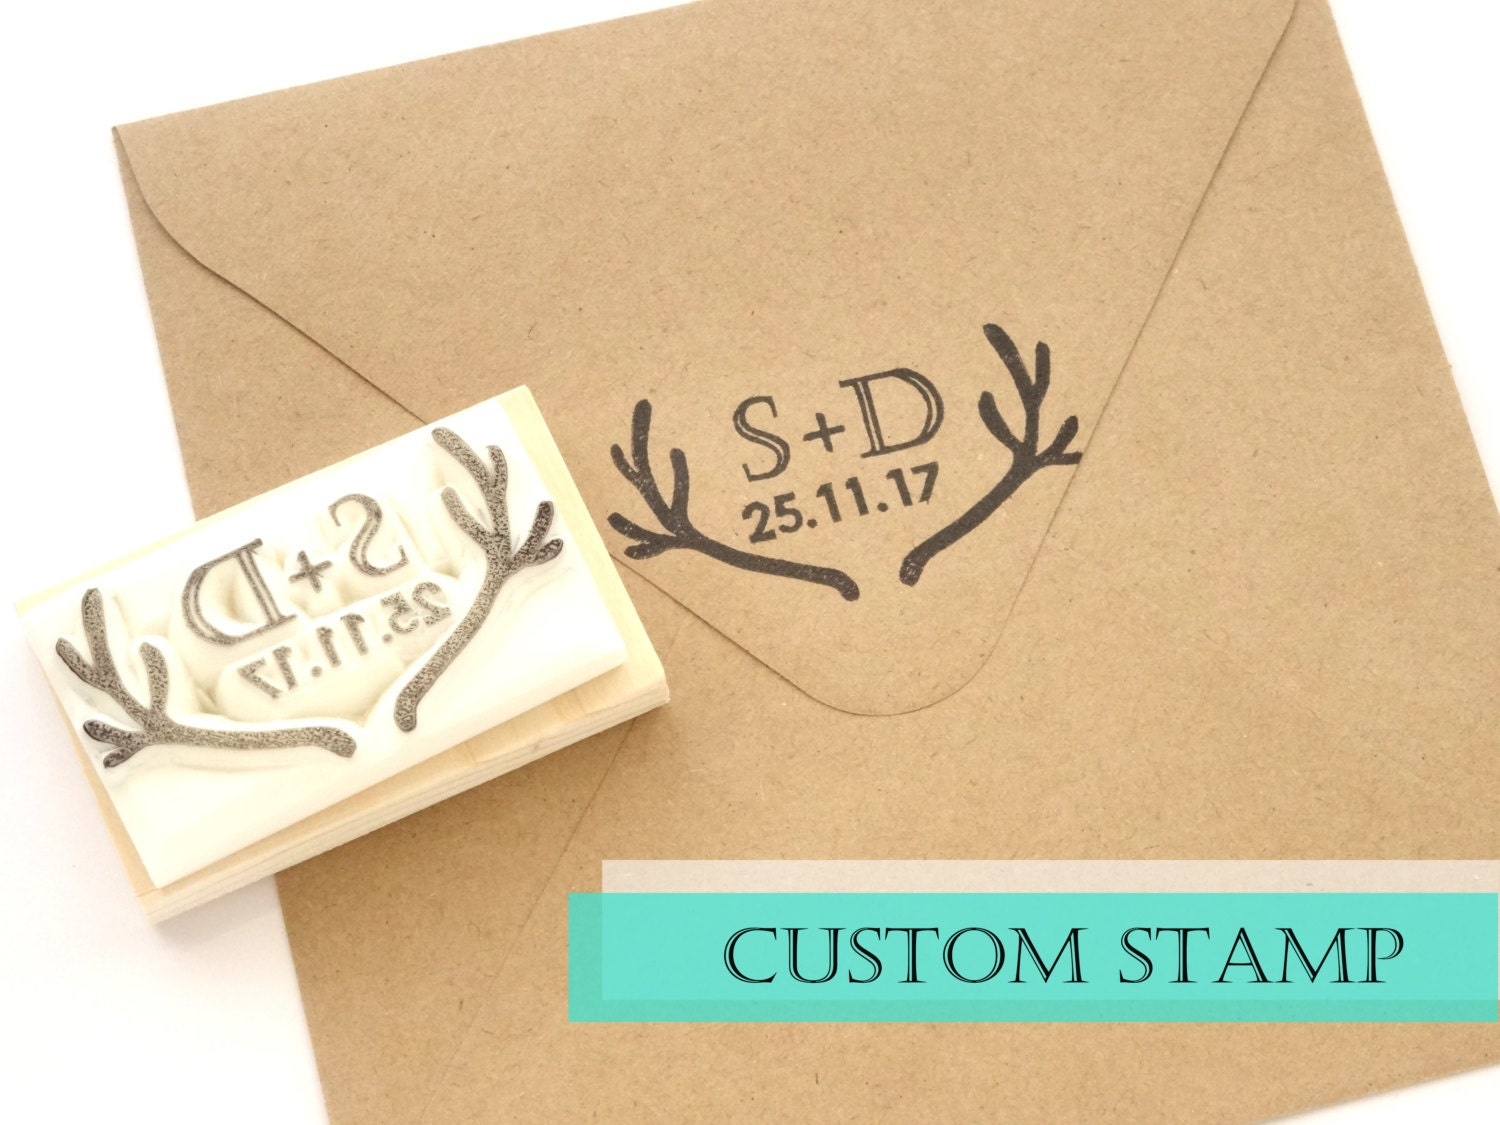 Personalized Rubber Stamps For Wedding Invitations: Custom Rubber Stamp Wedding Invitation Initial And Date